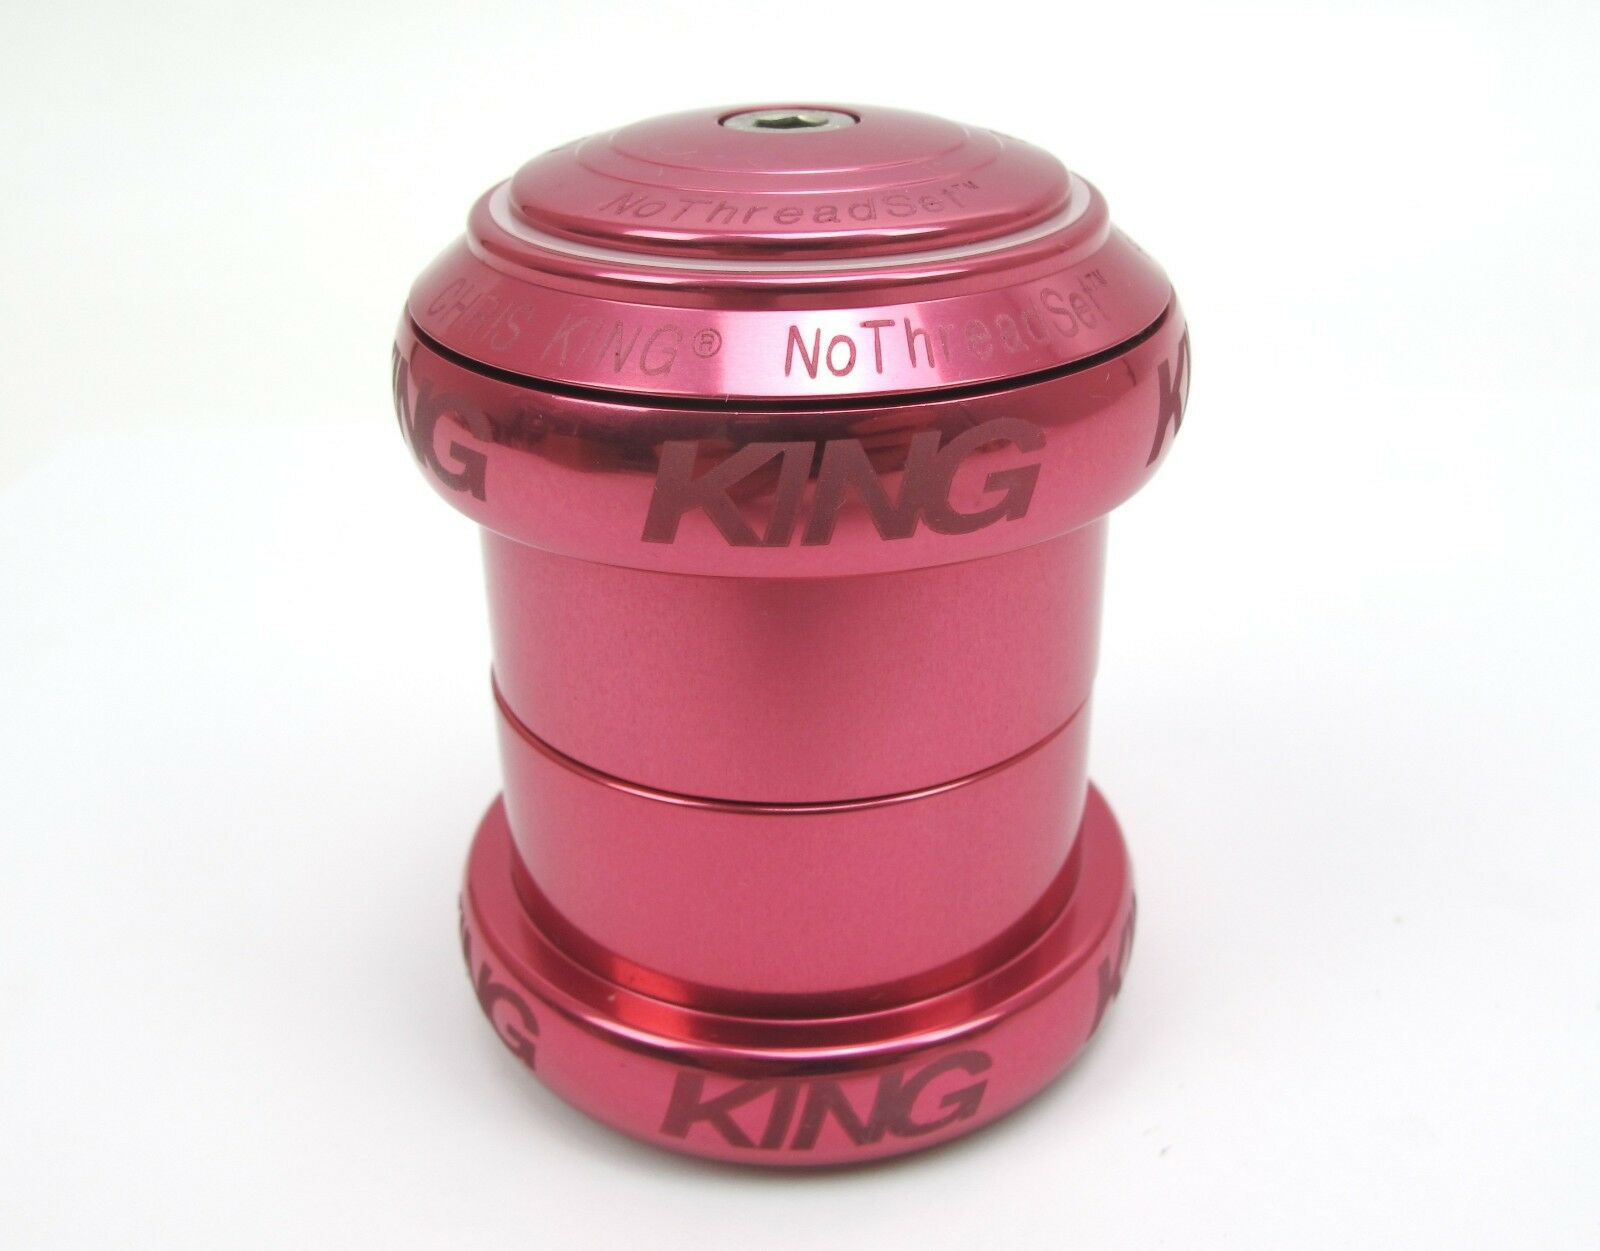 NEW Chris King NoThreadSet - 1.5  - Pink Sotto Voce - 10 Year Warranty